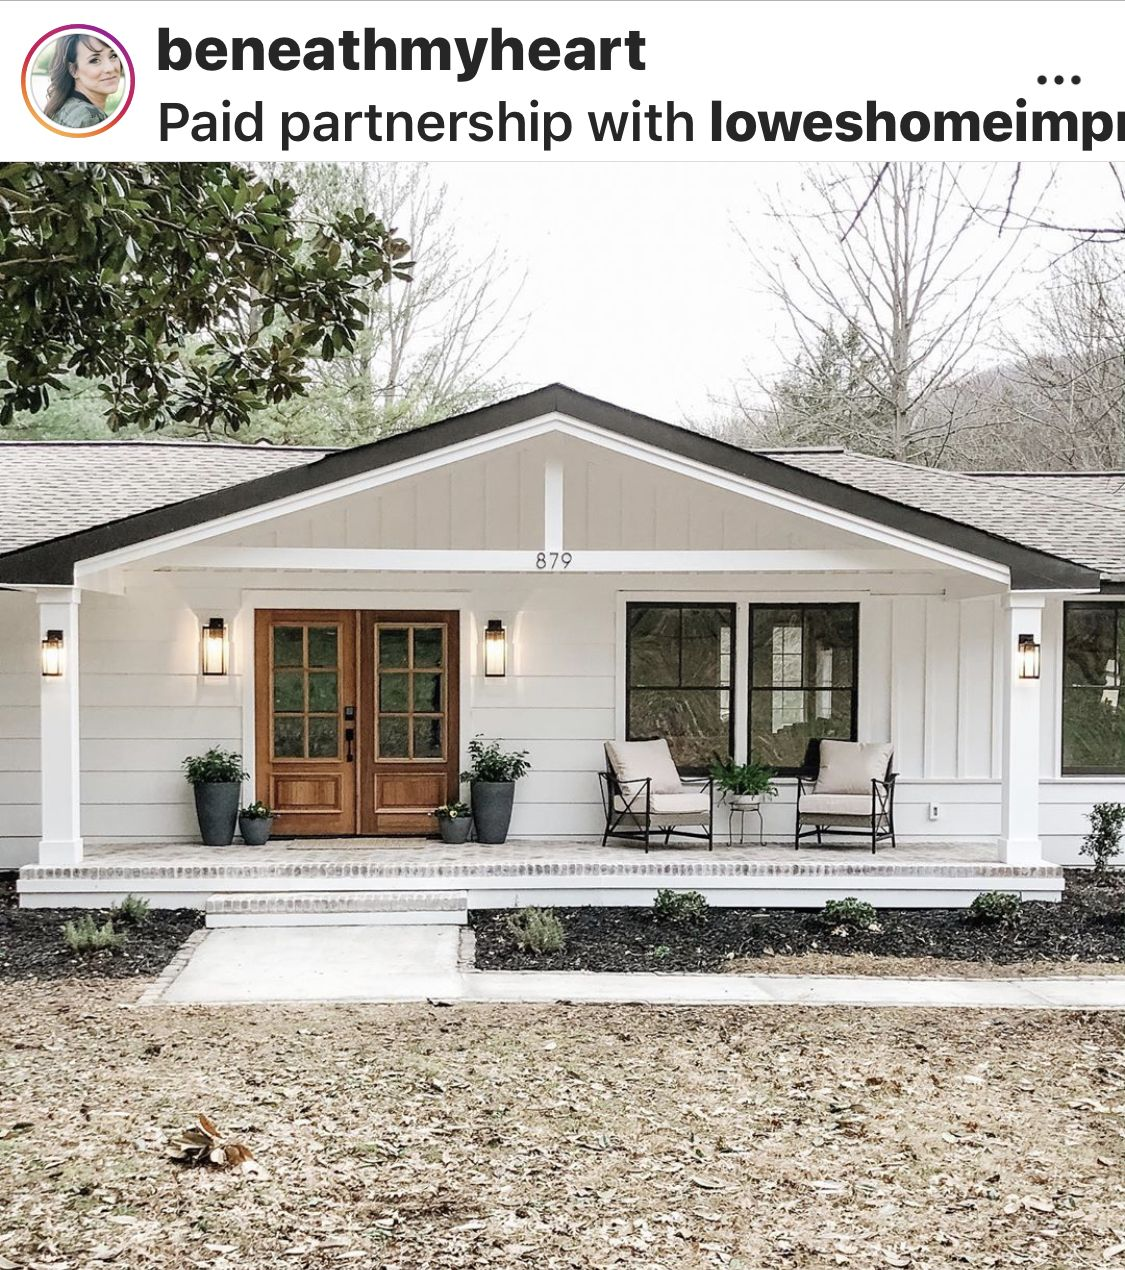 Pin By 𝓟𝓪𝓾𝓵𝓪 𝓑𝓵𝓾𝓶𝓮 On Front Porch Porticos In 2020 Ranch House Exterior Bungalow Exterior Brick Exterior House